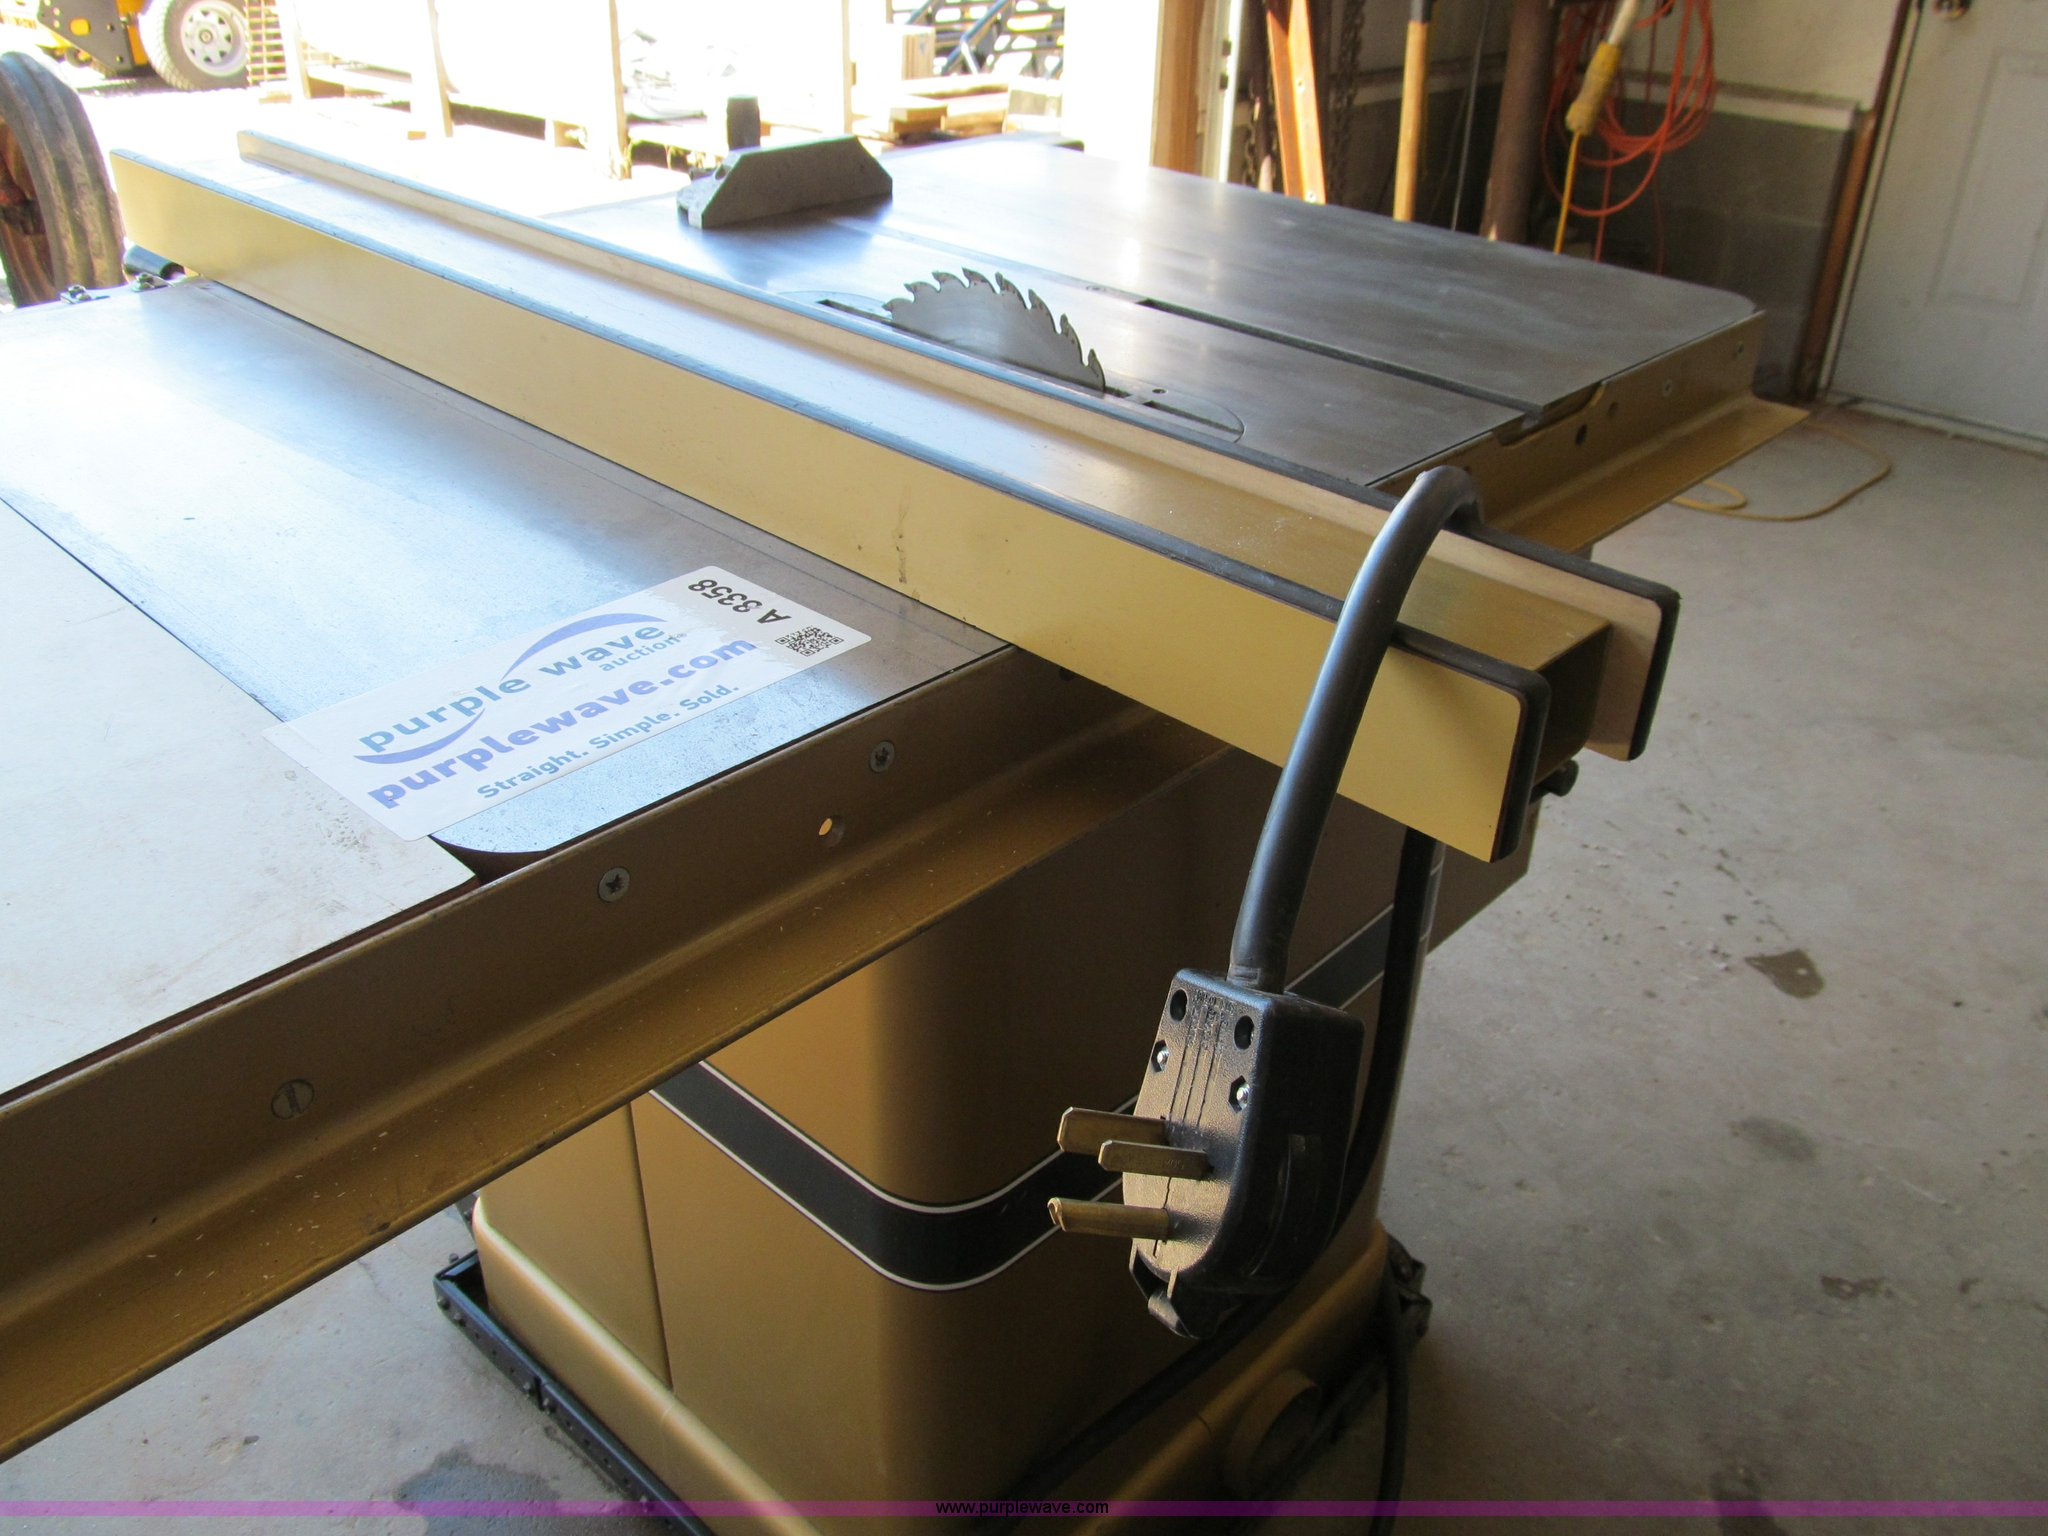 Powermatic 66 table saw | Item A8358 | SOLD! Wednesday July